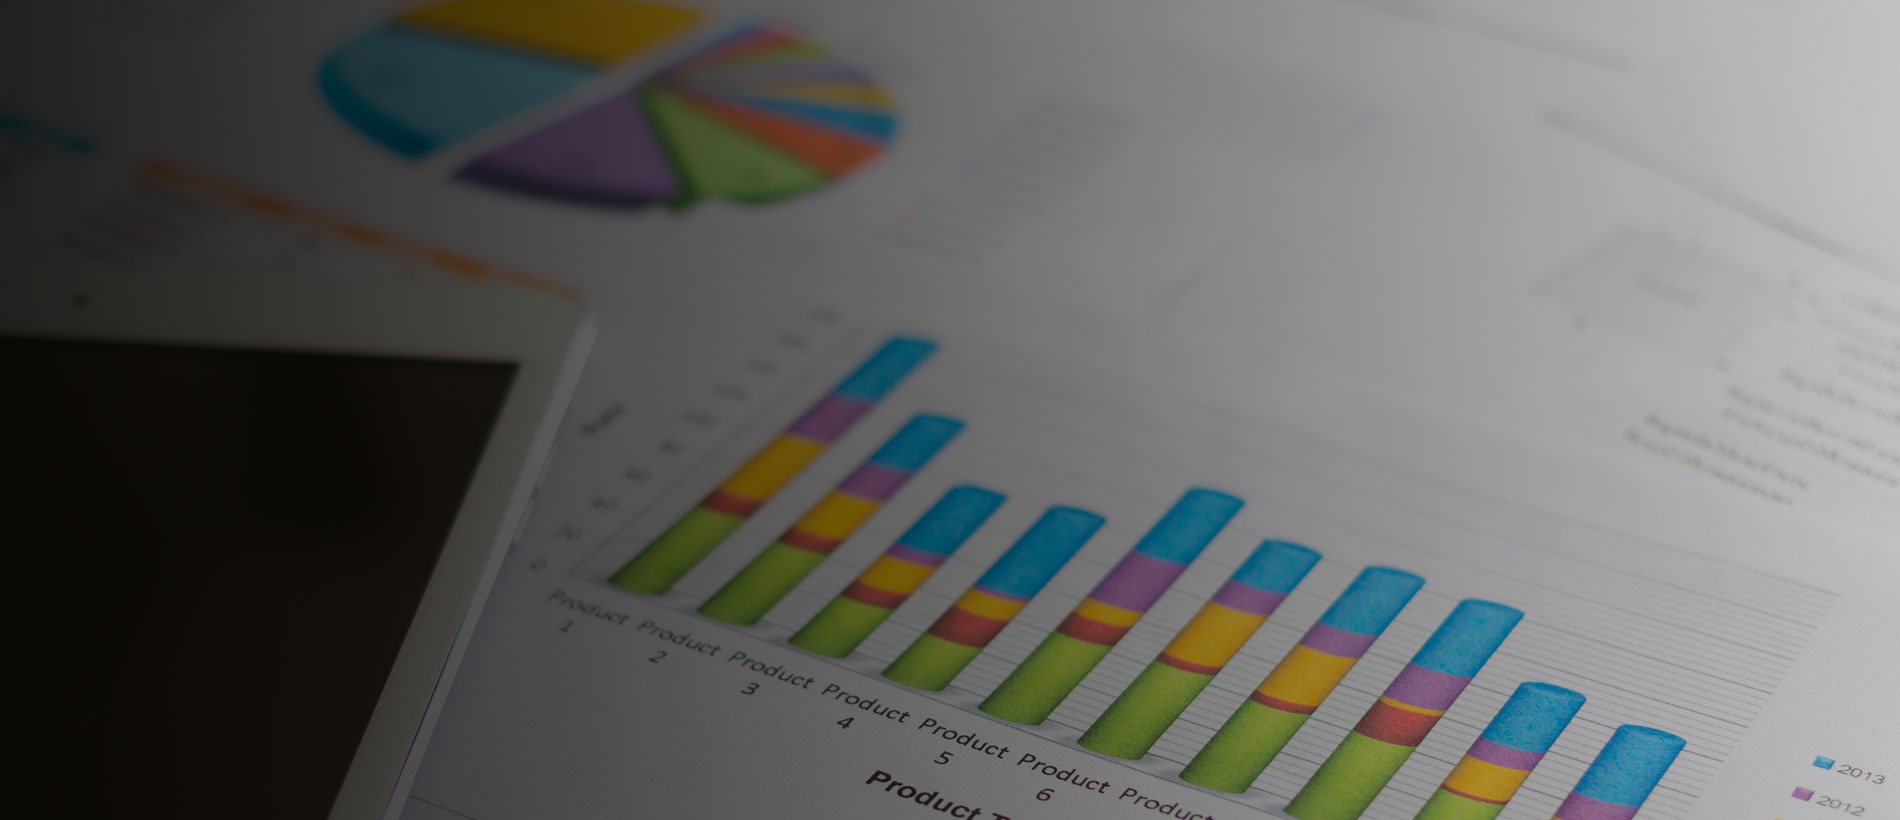 Product charts showing data analytics